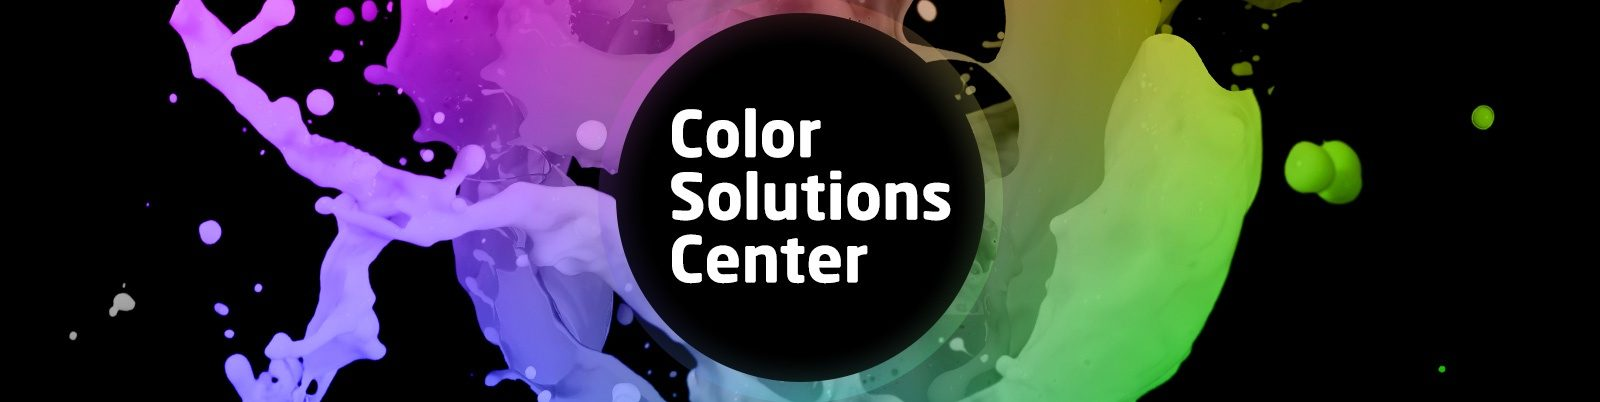 Color Solutions Center – Axalta Coating Systems